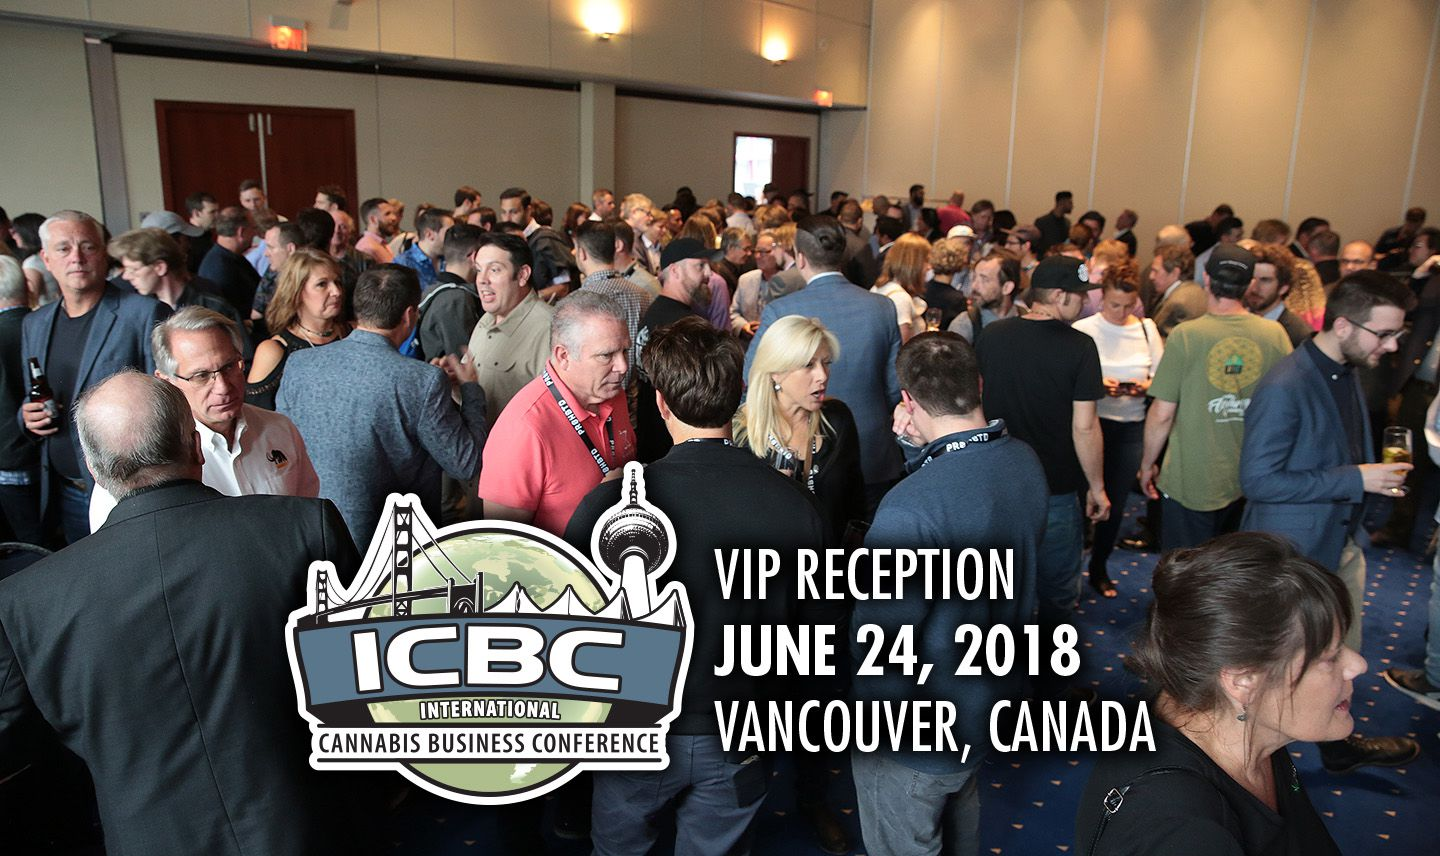 Vancouver ICBC VIP Party